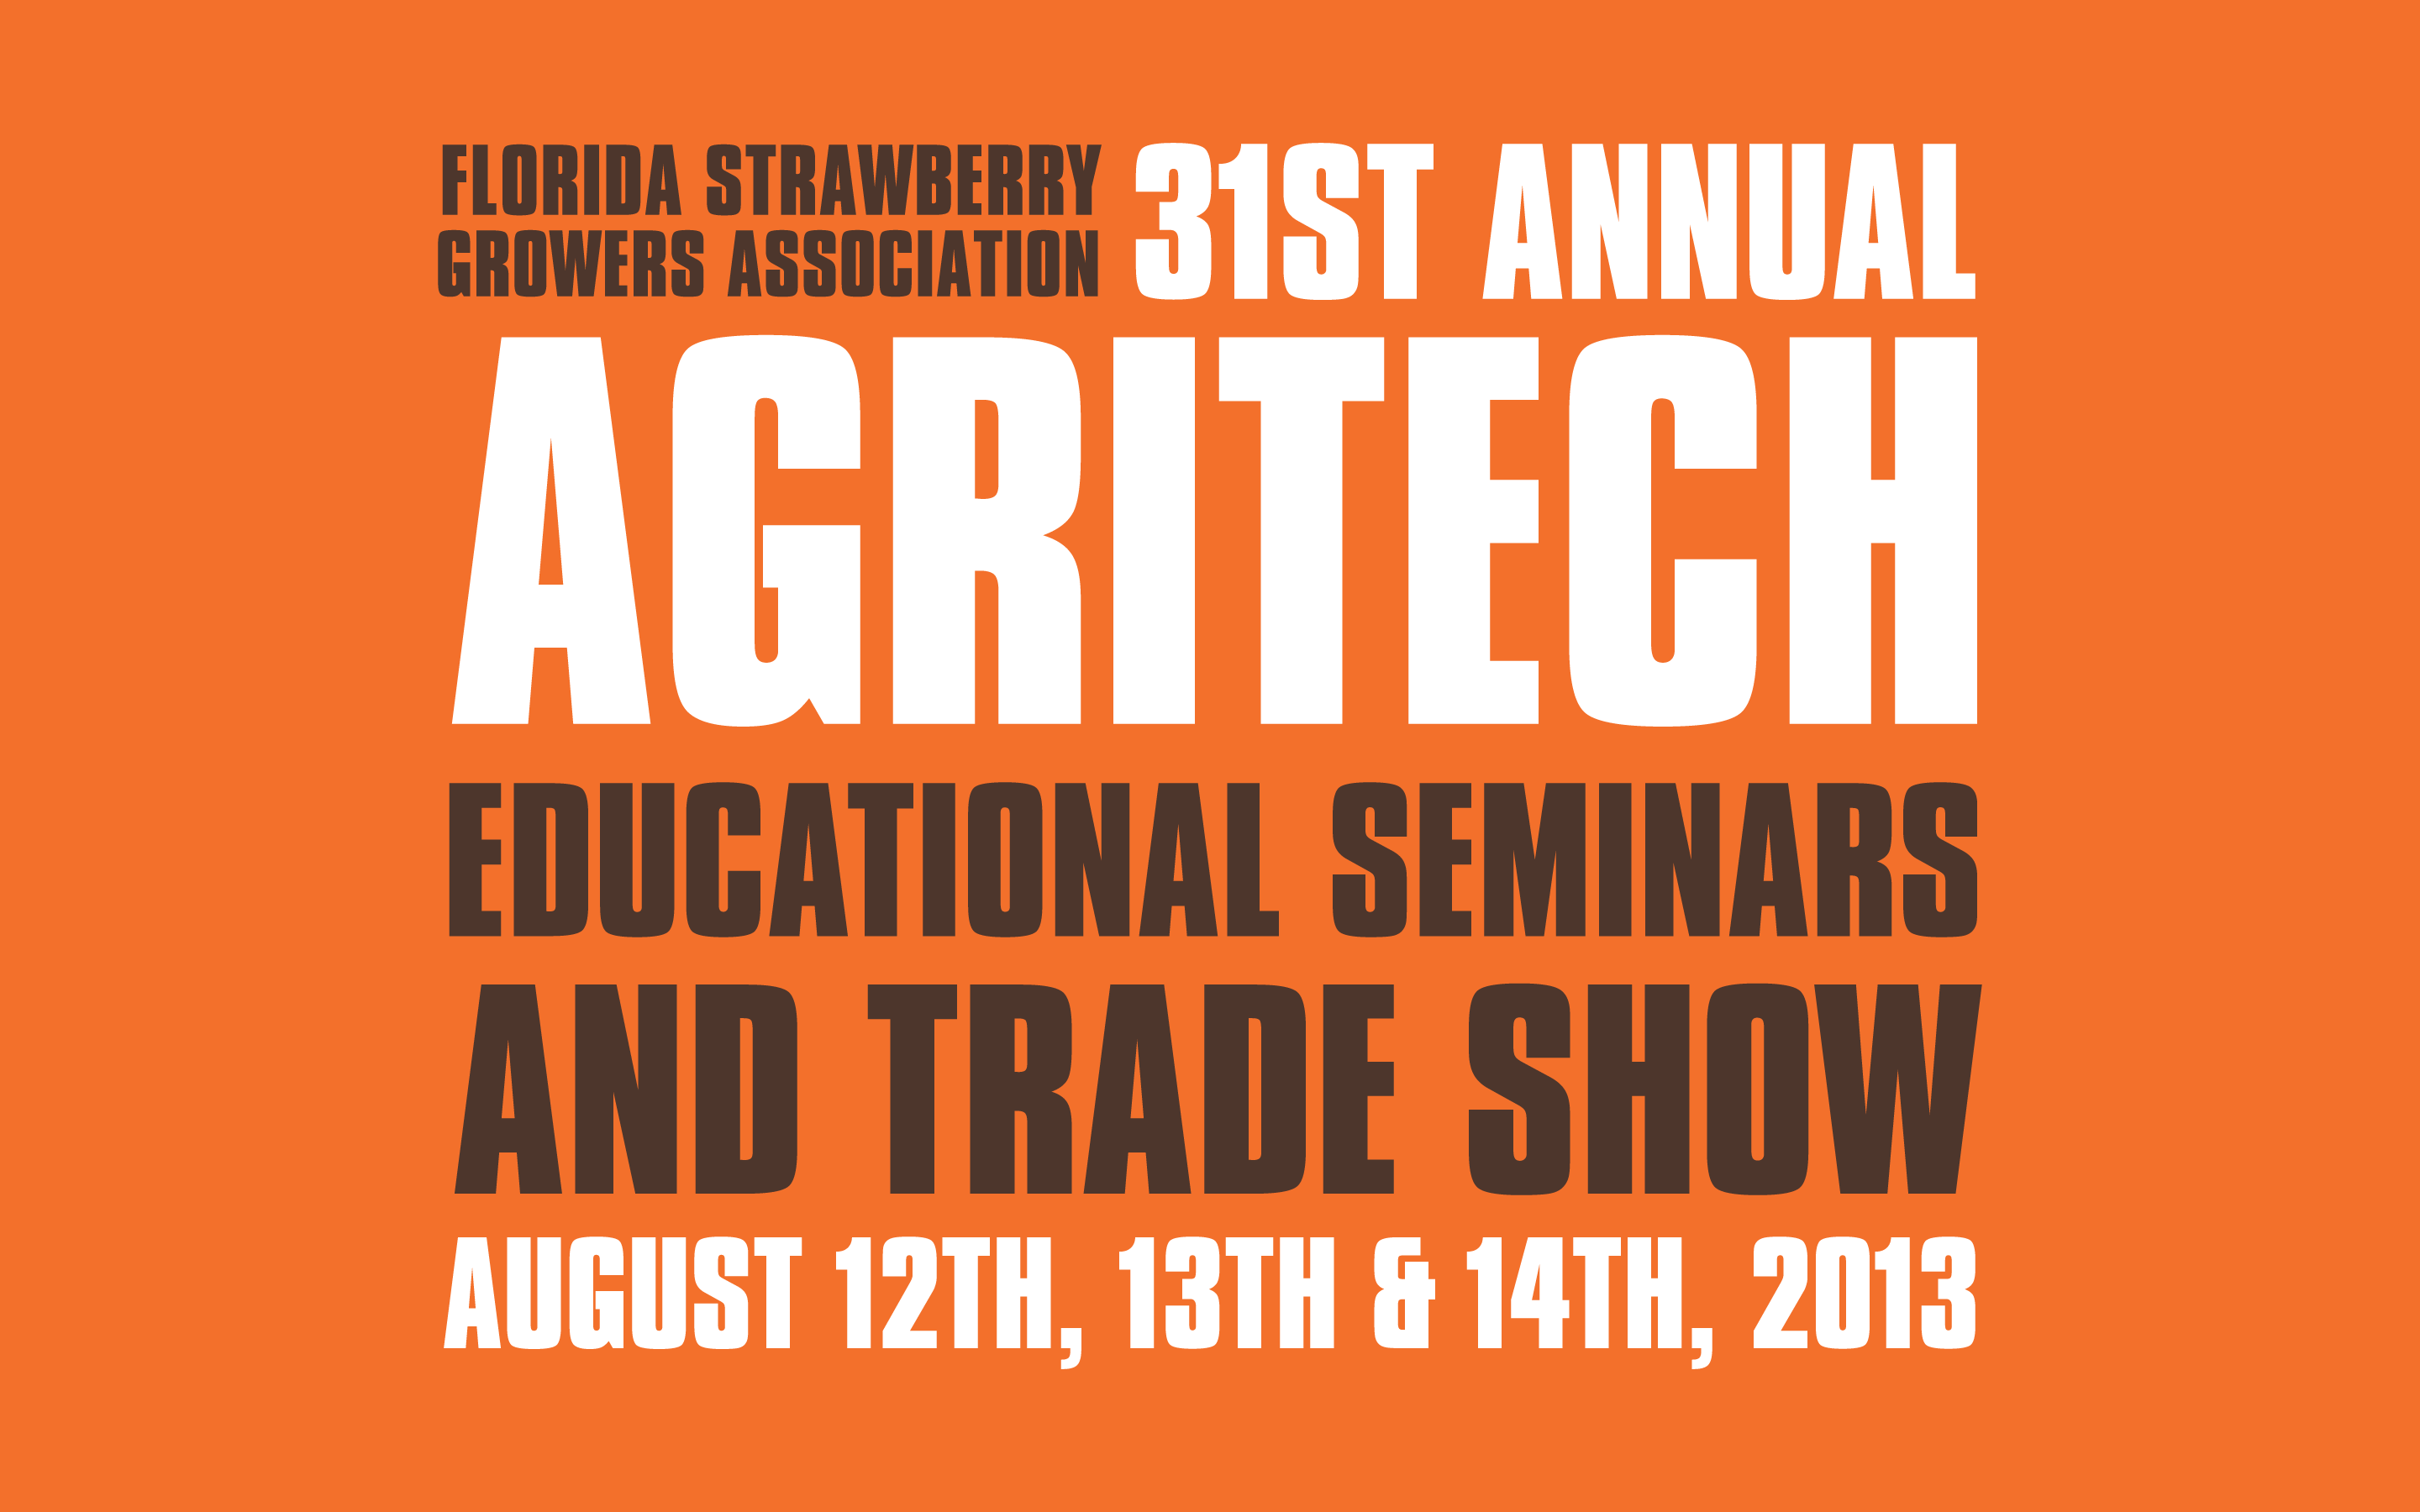 The 31st annual Agritech is hosted by the Florida Strawberry Growers Association and runs August 12-14, 2013 at the John R. Trinkle Building in Plant City, FL.